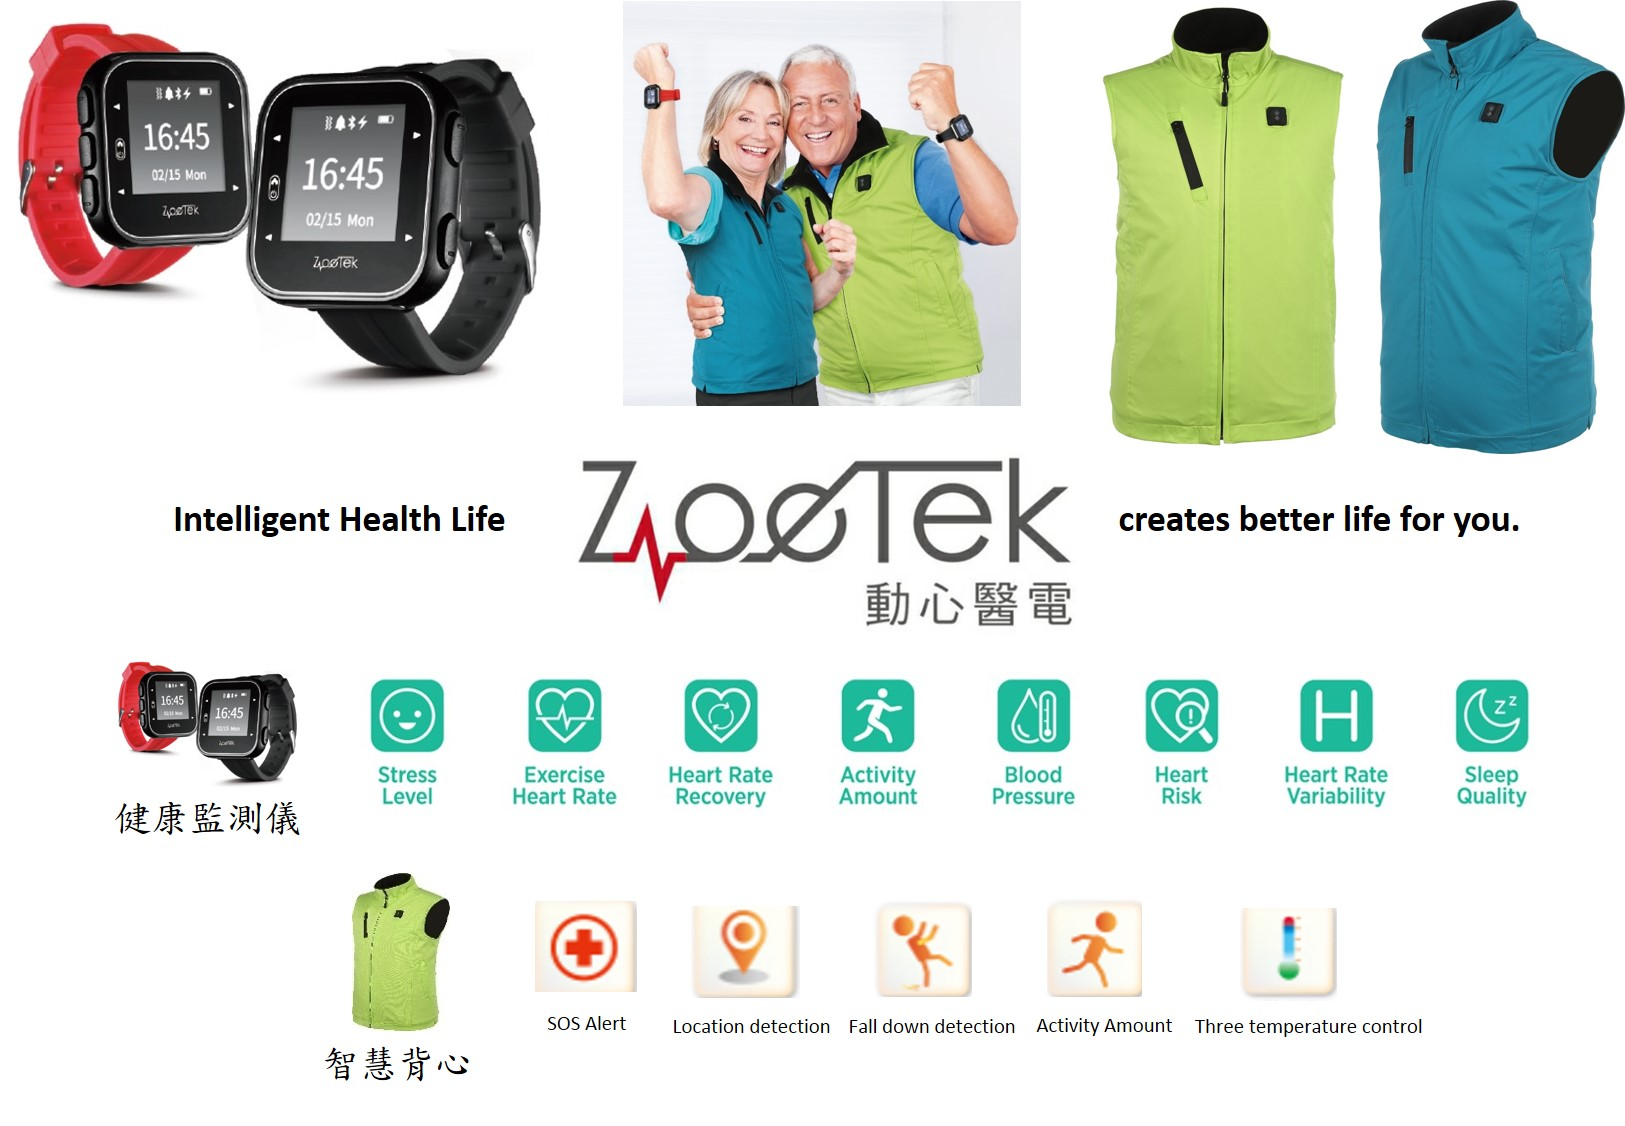 Zoetek,Intelligent Health Life,creates better life for you.